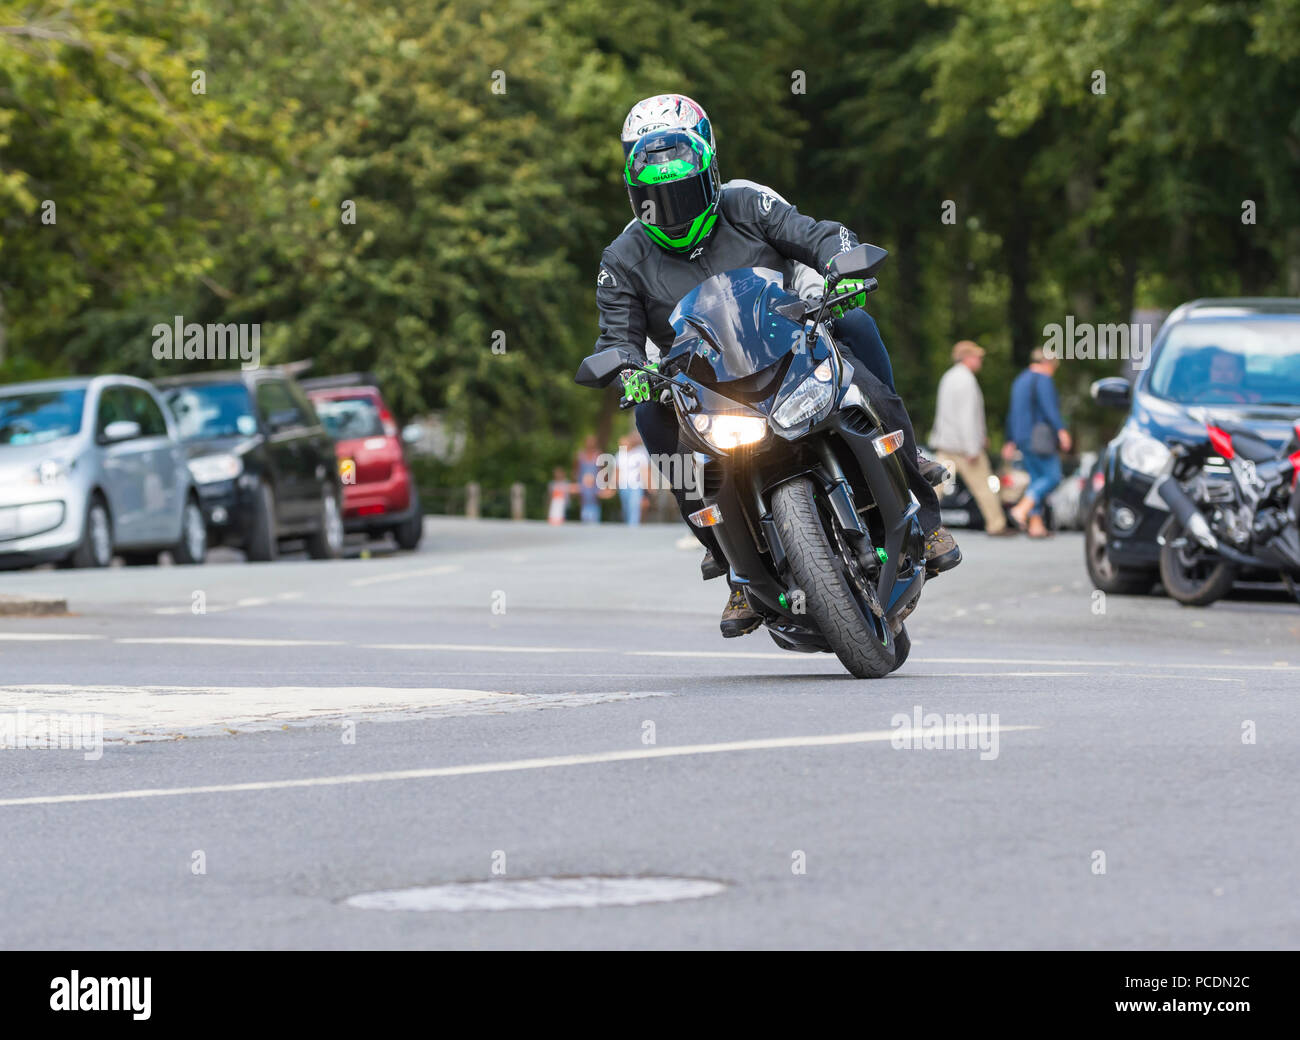 Person with pillion passenger riding on a Kawasaki Z1000SX motorcycle, leaning into a corner on a mini roundabout in West Sussex, England, UK. - Stock Image